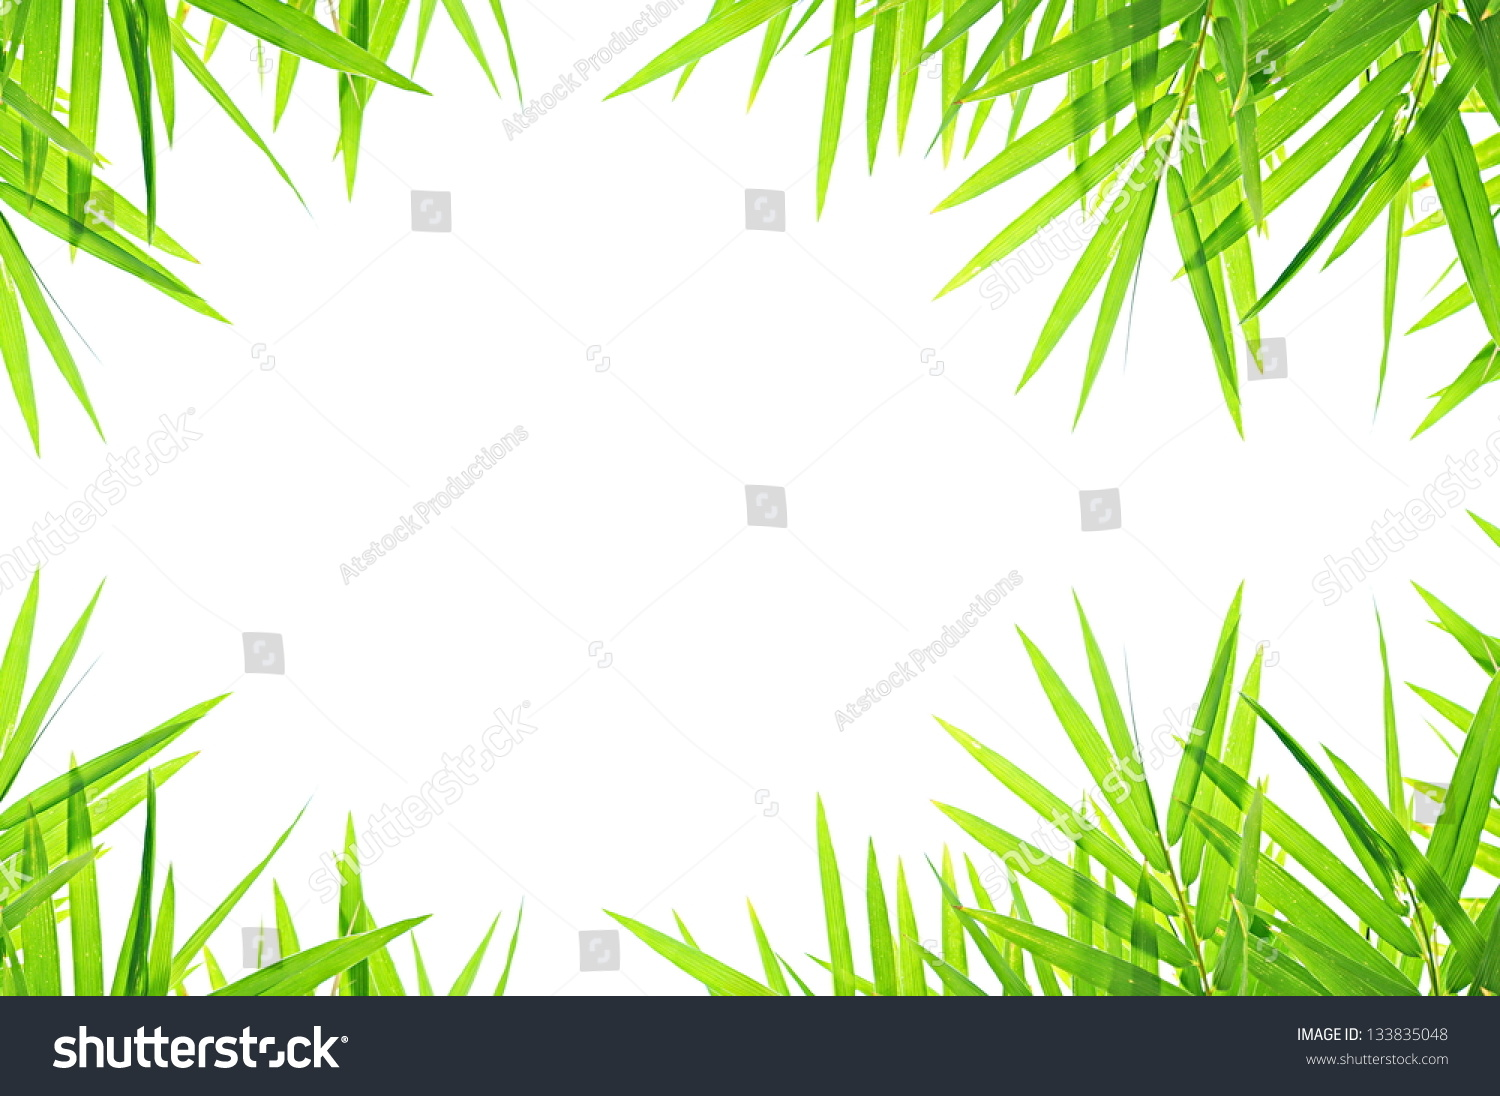 bamboo leaf border design background stock photo 133835048